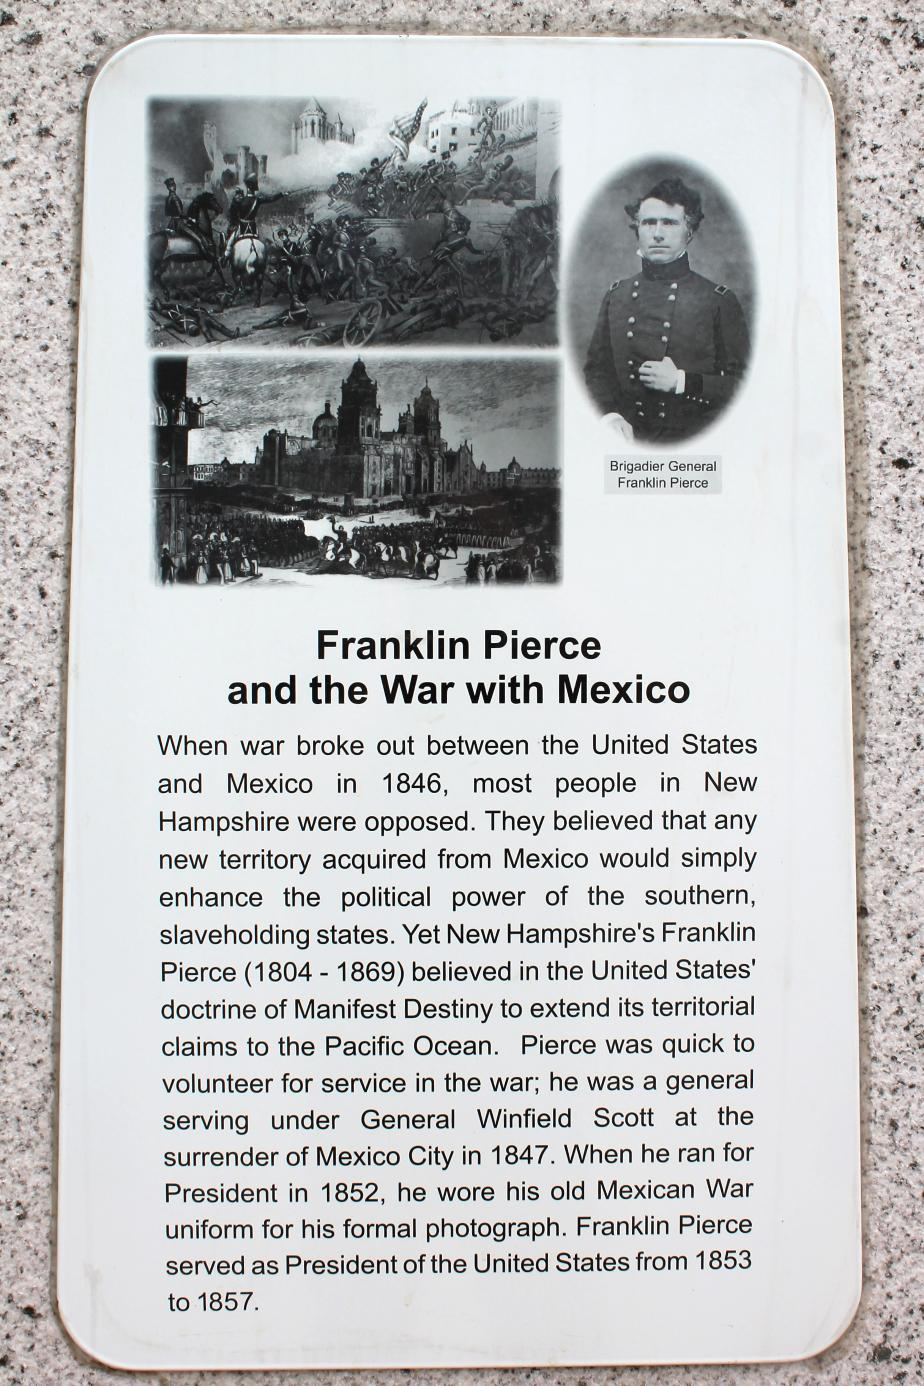 NH State Veterans Cemetery - Franklin Pierce & the War with Mexico